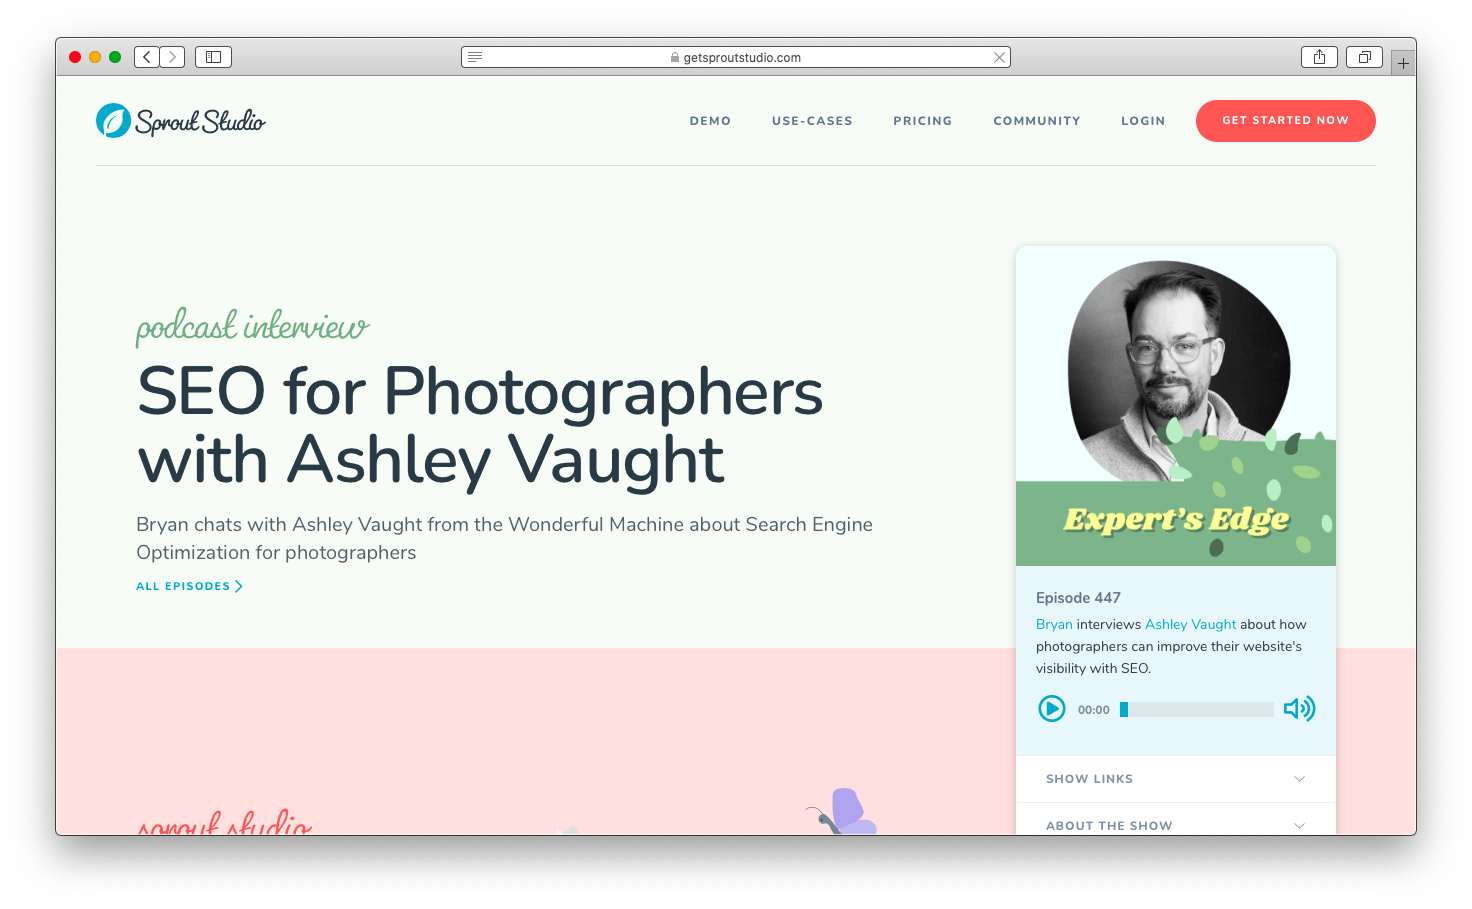 Screenshot of the Sprout Studio interview of Ashley Vaught by CEO Bryan Caporicci